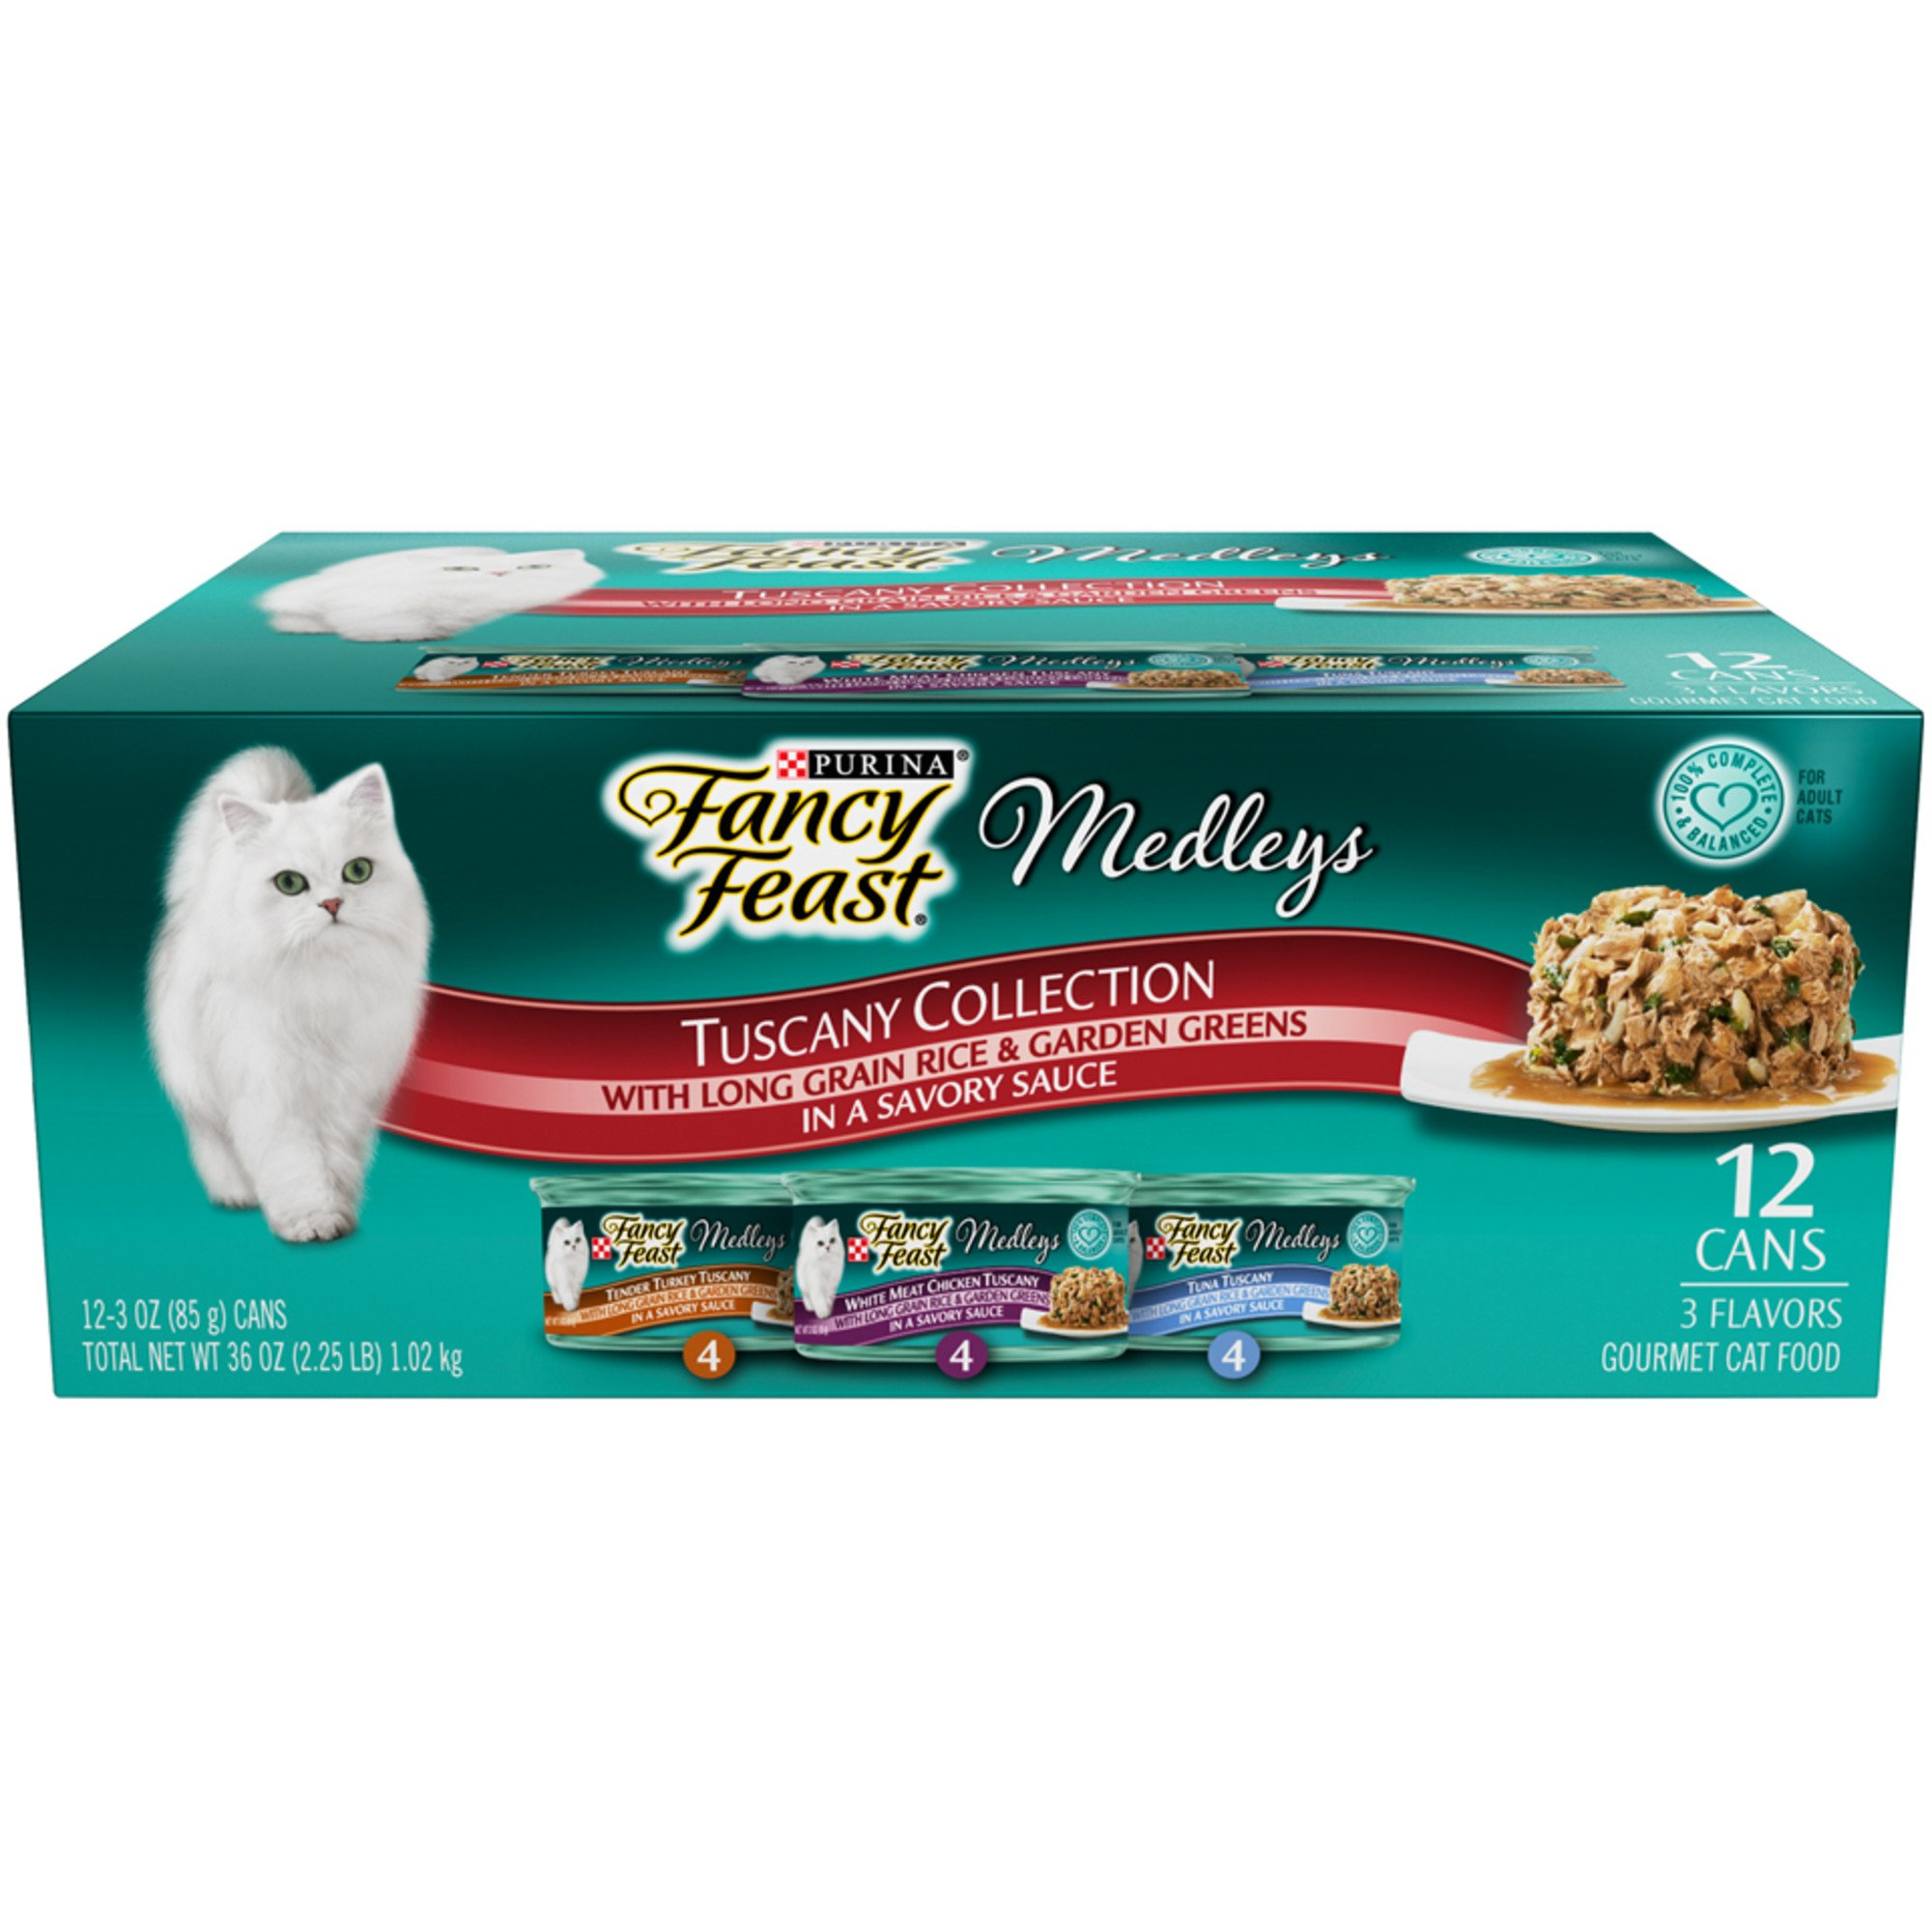 Purina Fancy Feast Medleys Tuscany Wet Cat Food Variety Pack, 3 oz., Count of 12